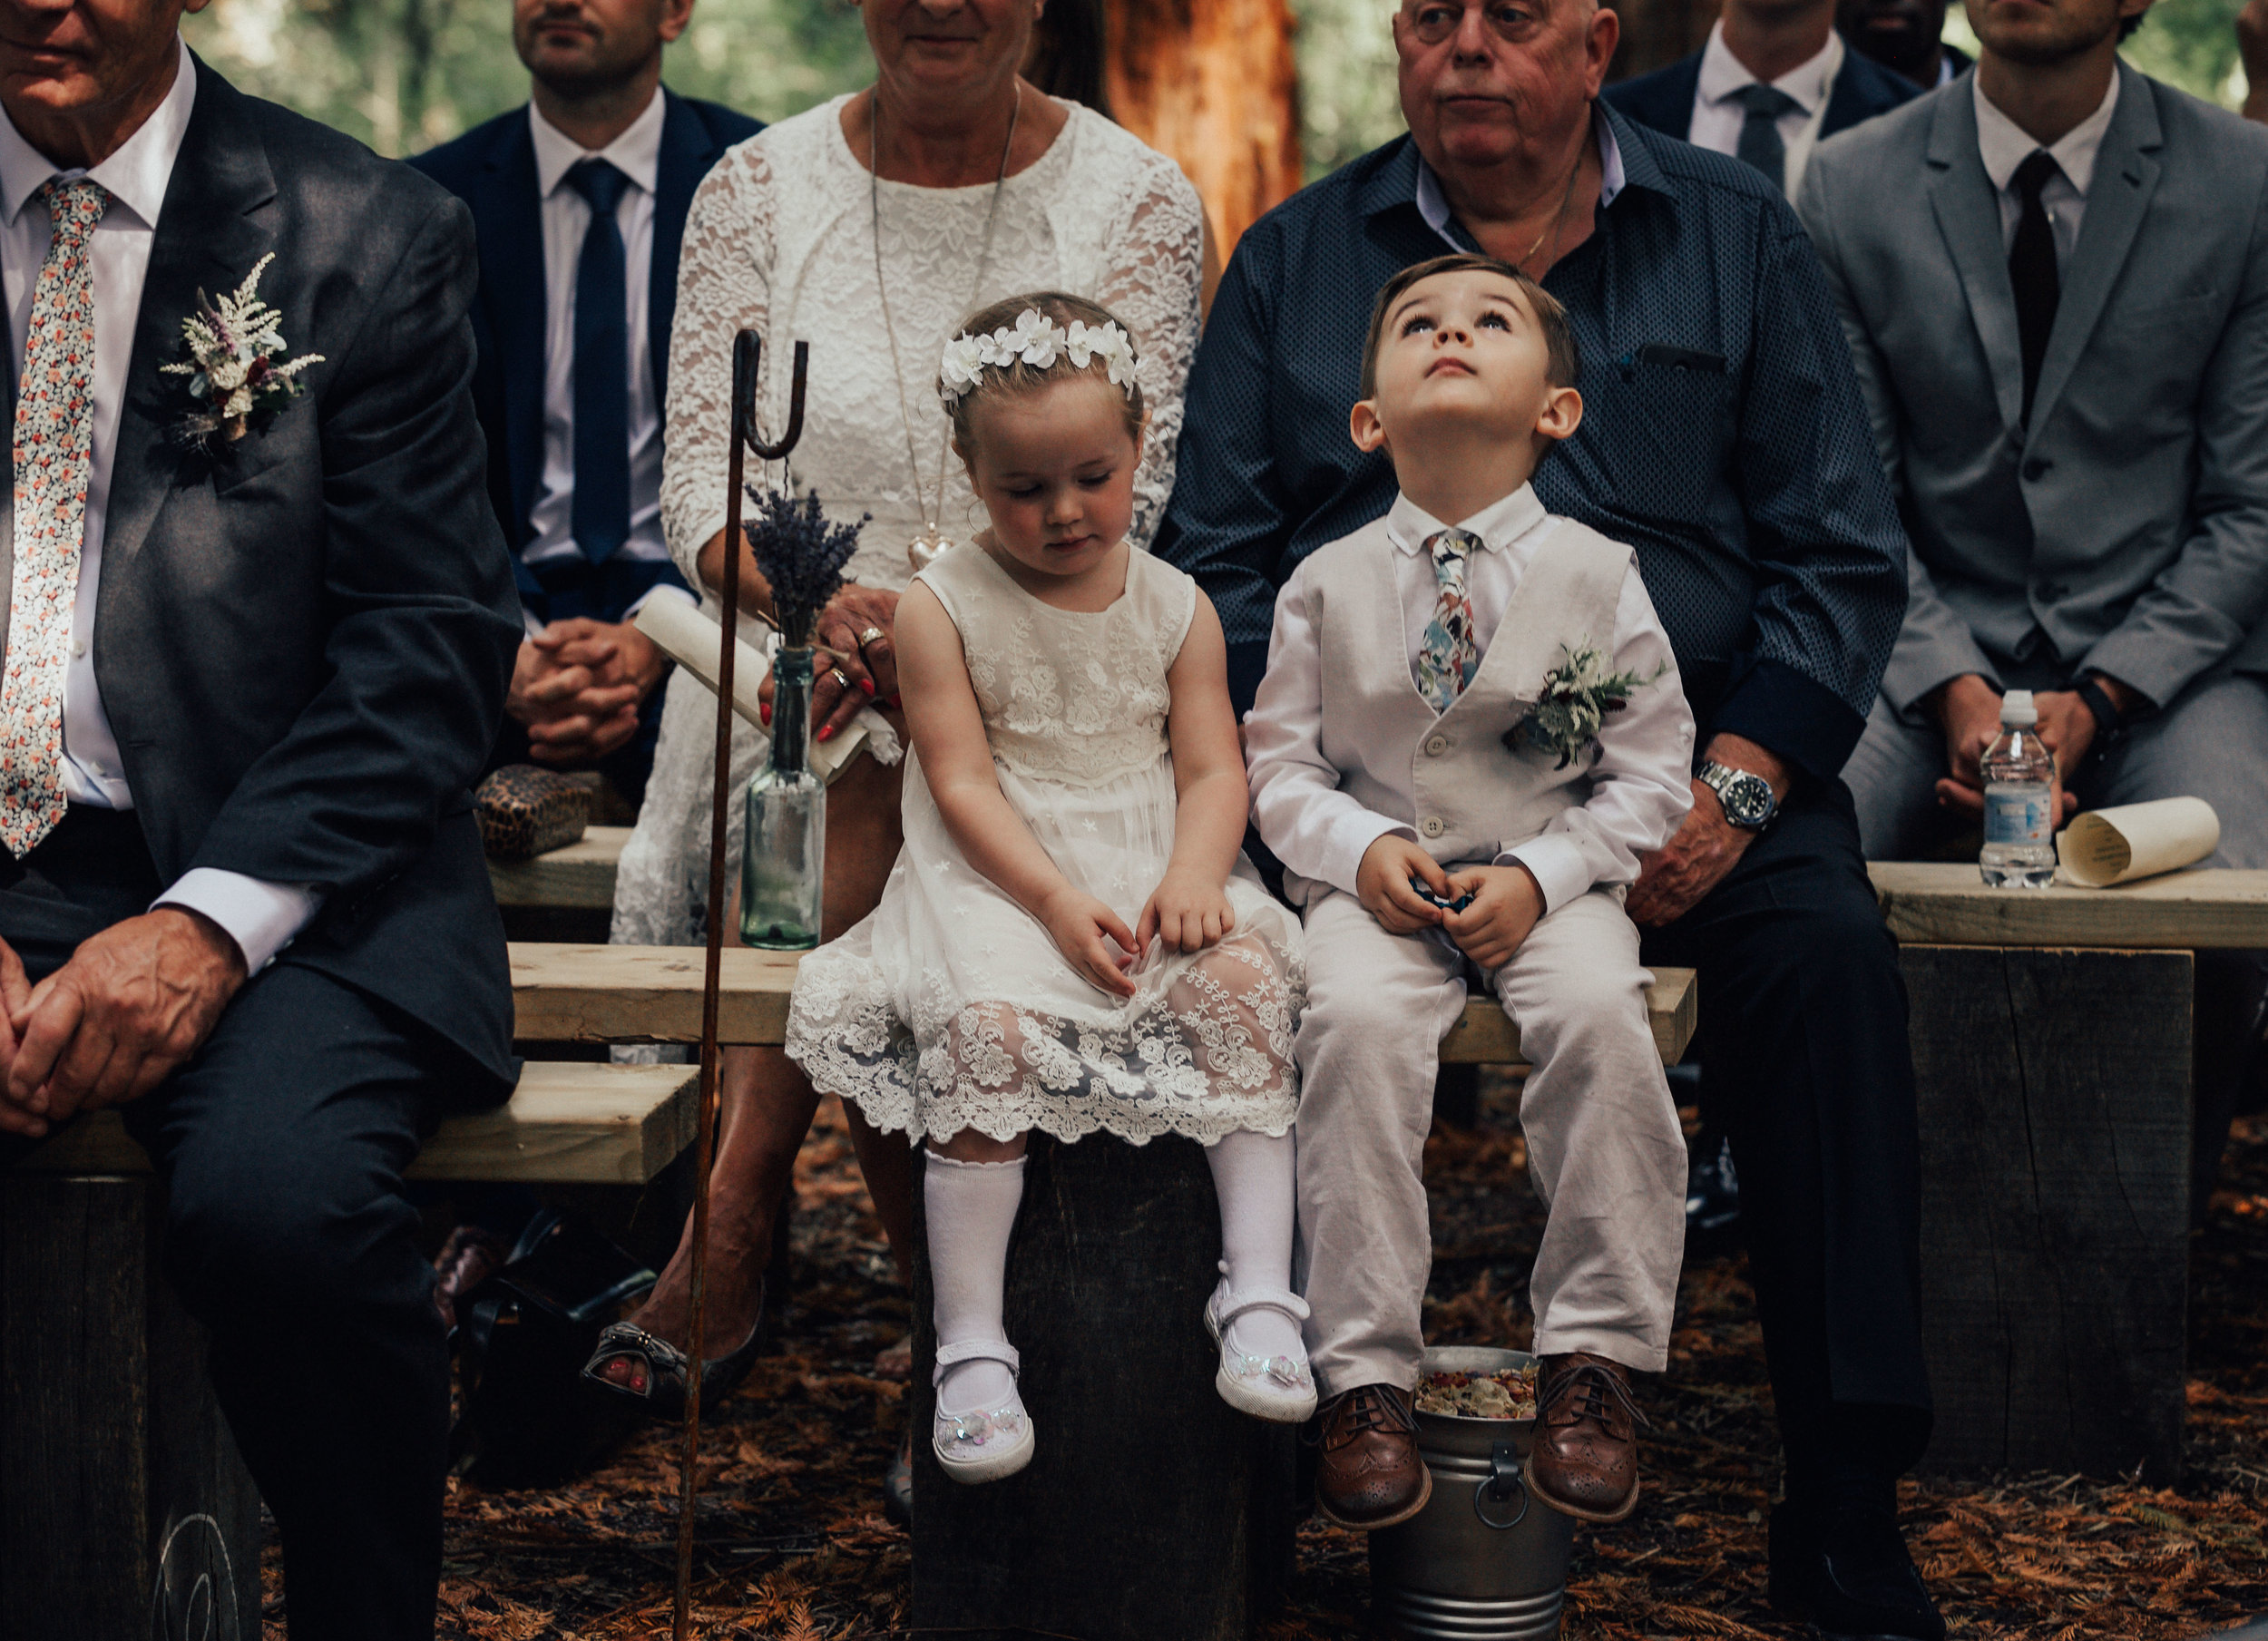 TWO_WOODS_ESTATE_WEDDING_PULBOROUGH_PJ_PHILLIPS_PHOTOGRAPHY_FRAN_&_GEORGE_74.jpg